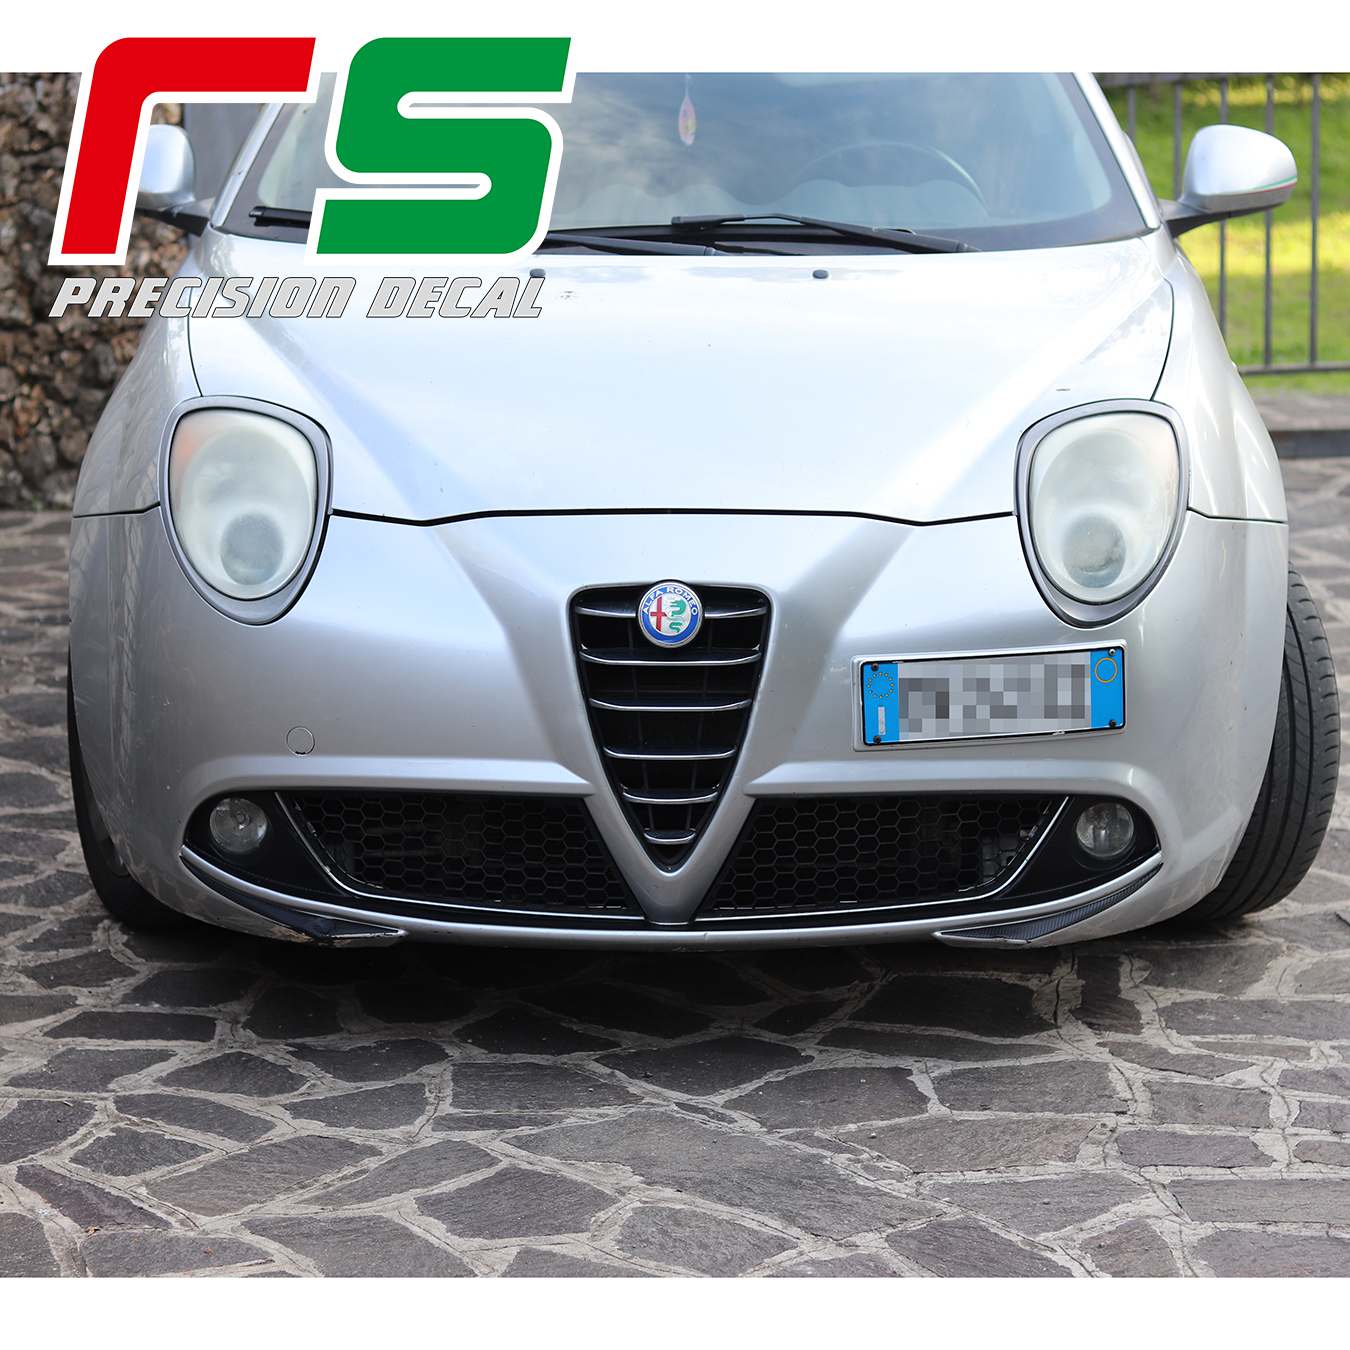 Alfa Romeo Mito Decal Bumper Inserts Mustache Fog Lights Carbonlook Tuning